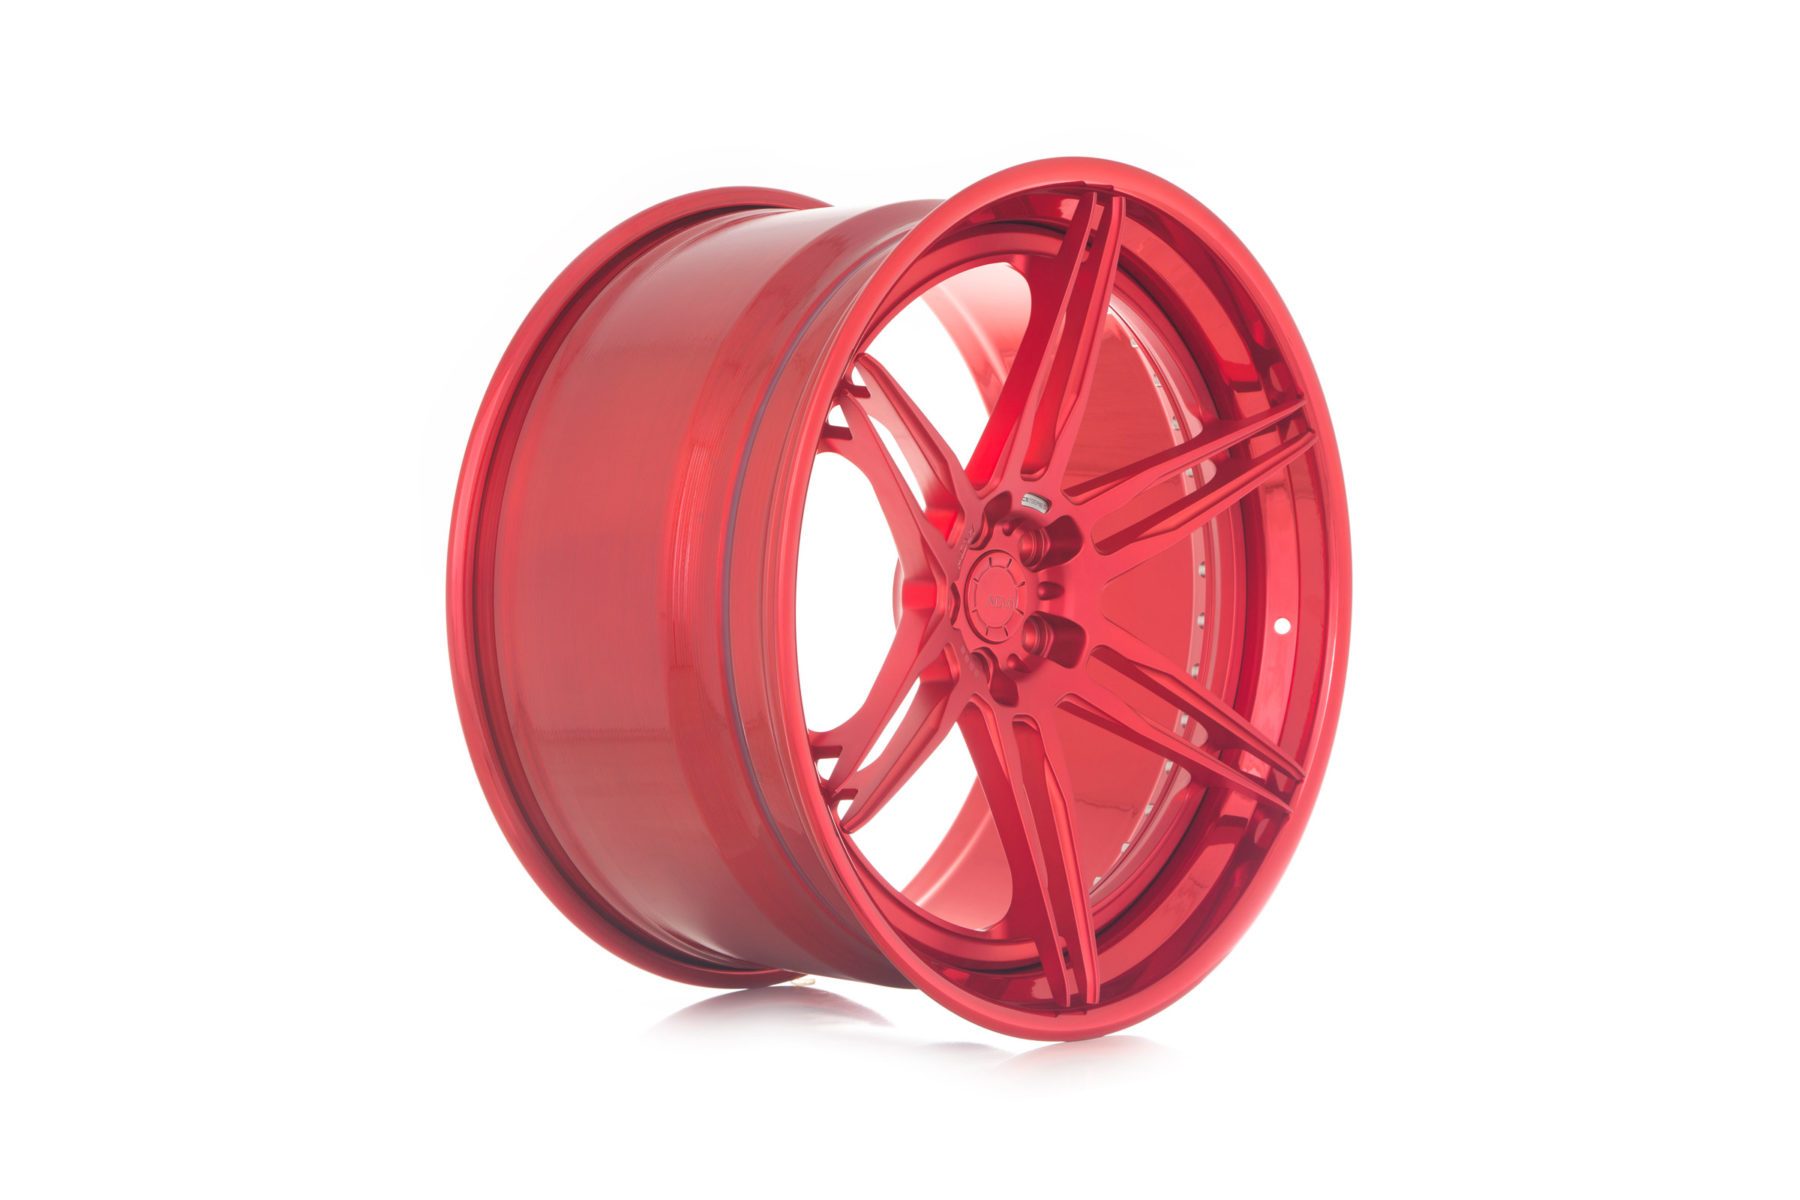 Нажмите для увеличения изображения adv06-track-spec-cs-polished-aluminum-matte-gloss-red-6-spoke-rims-10-1800x1200.jpg